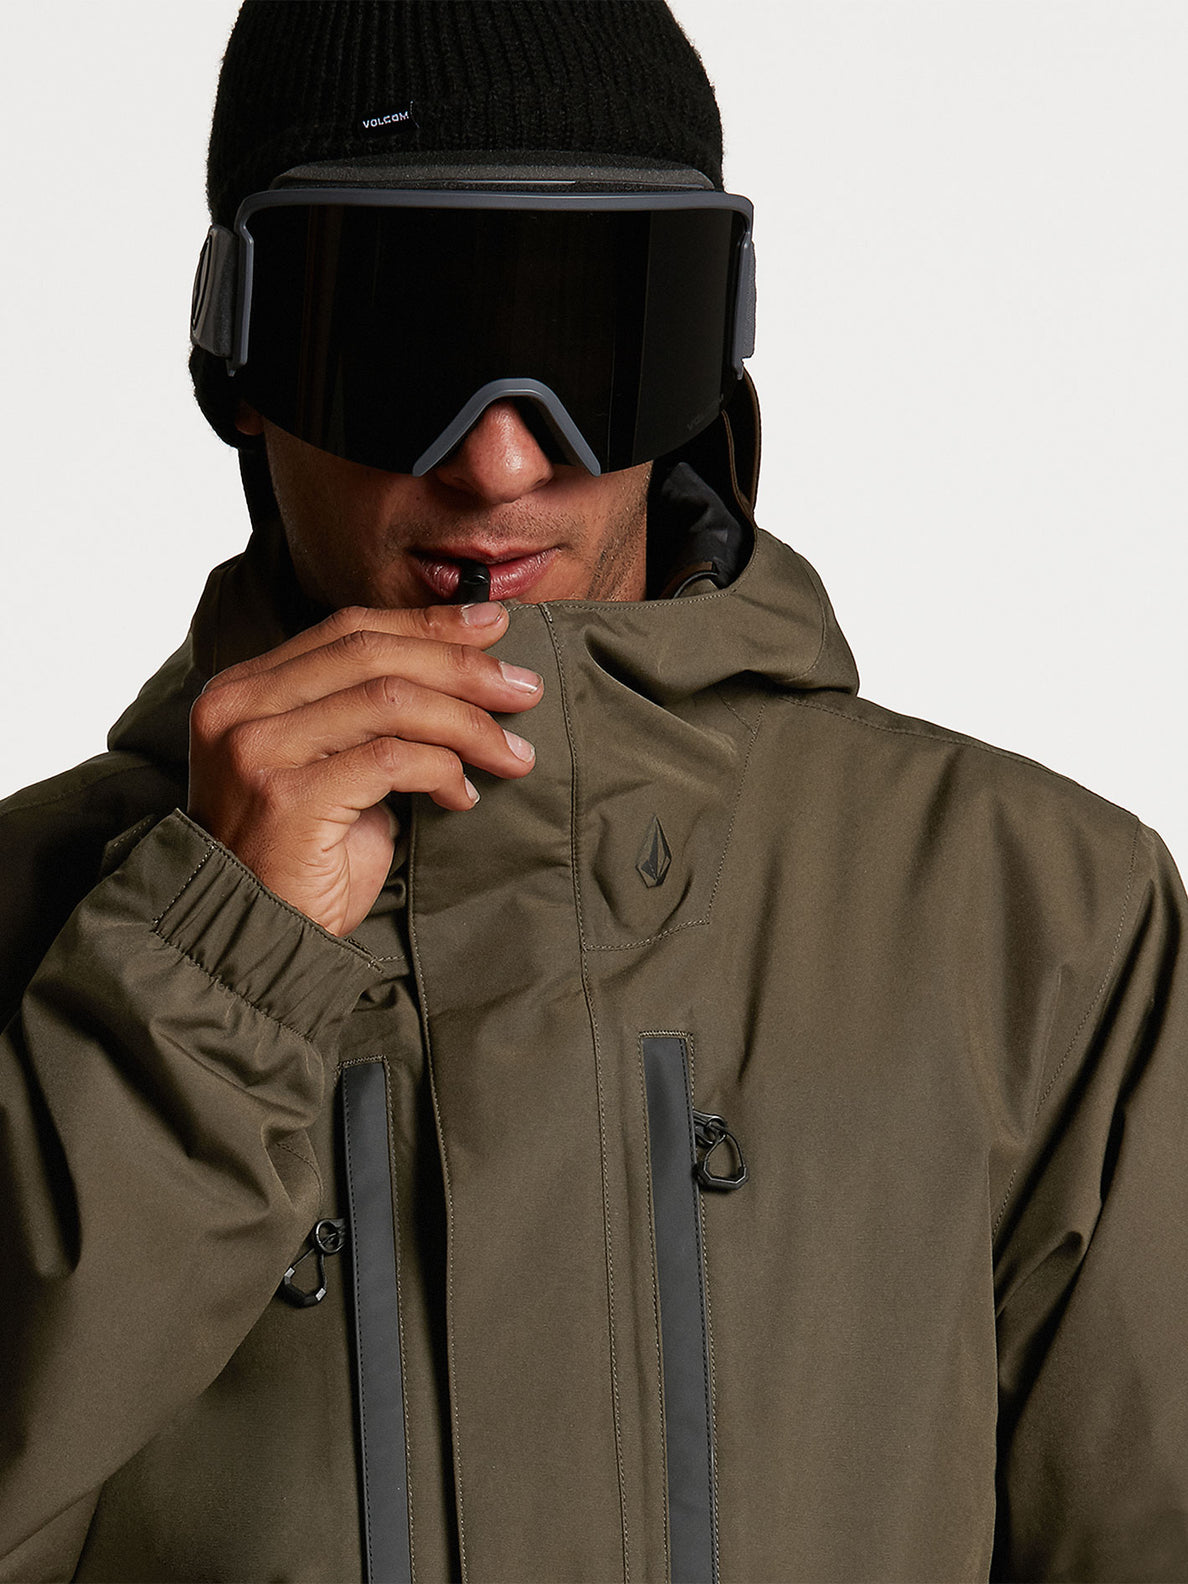 Ten Ins Gore-Tex Jacket Black Military (G0452113_BML) [09]